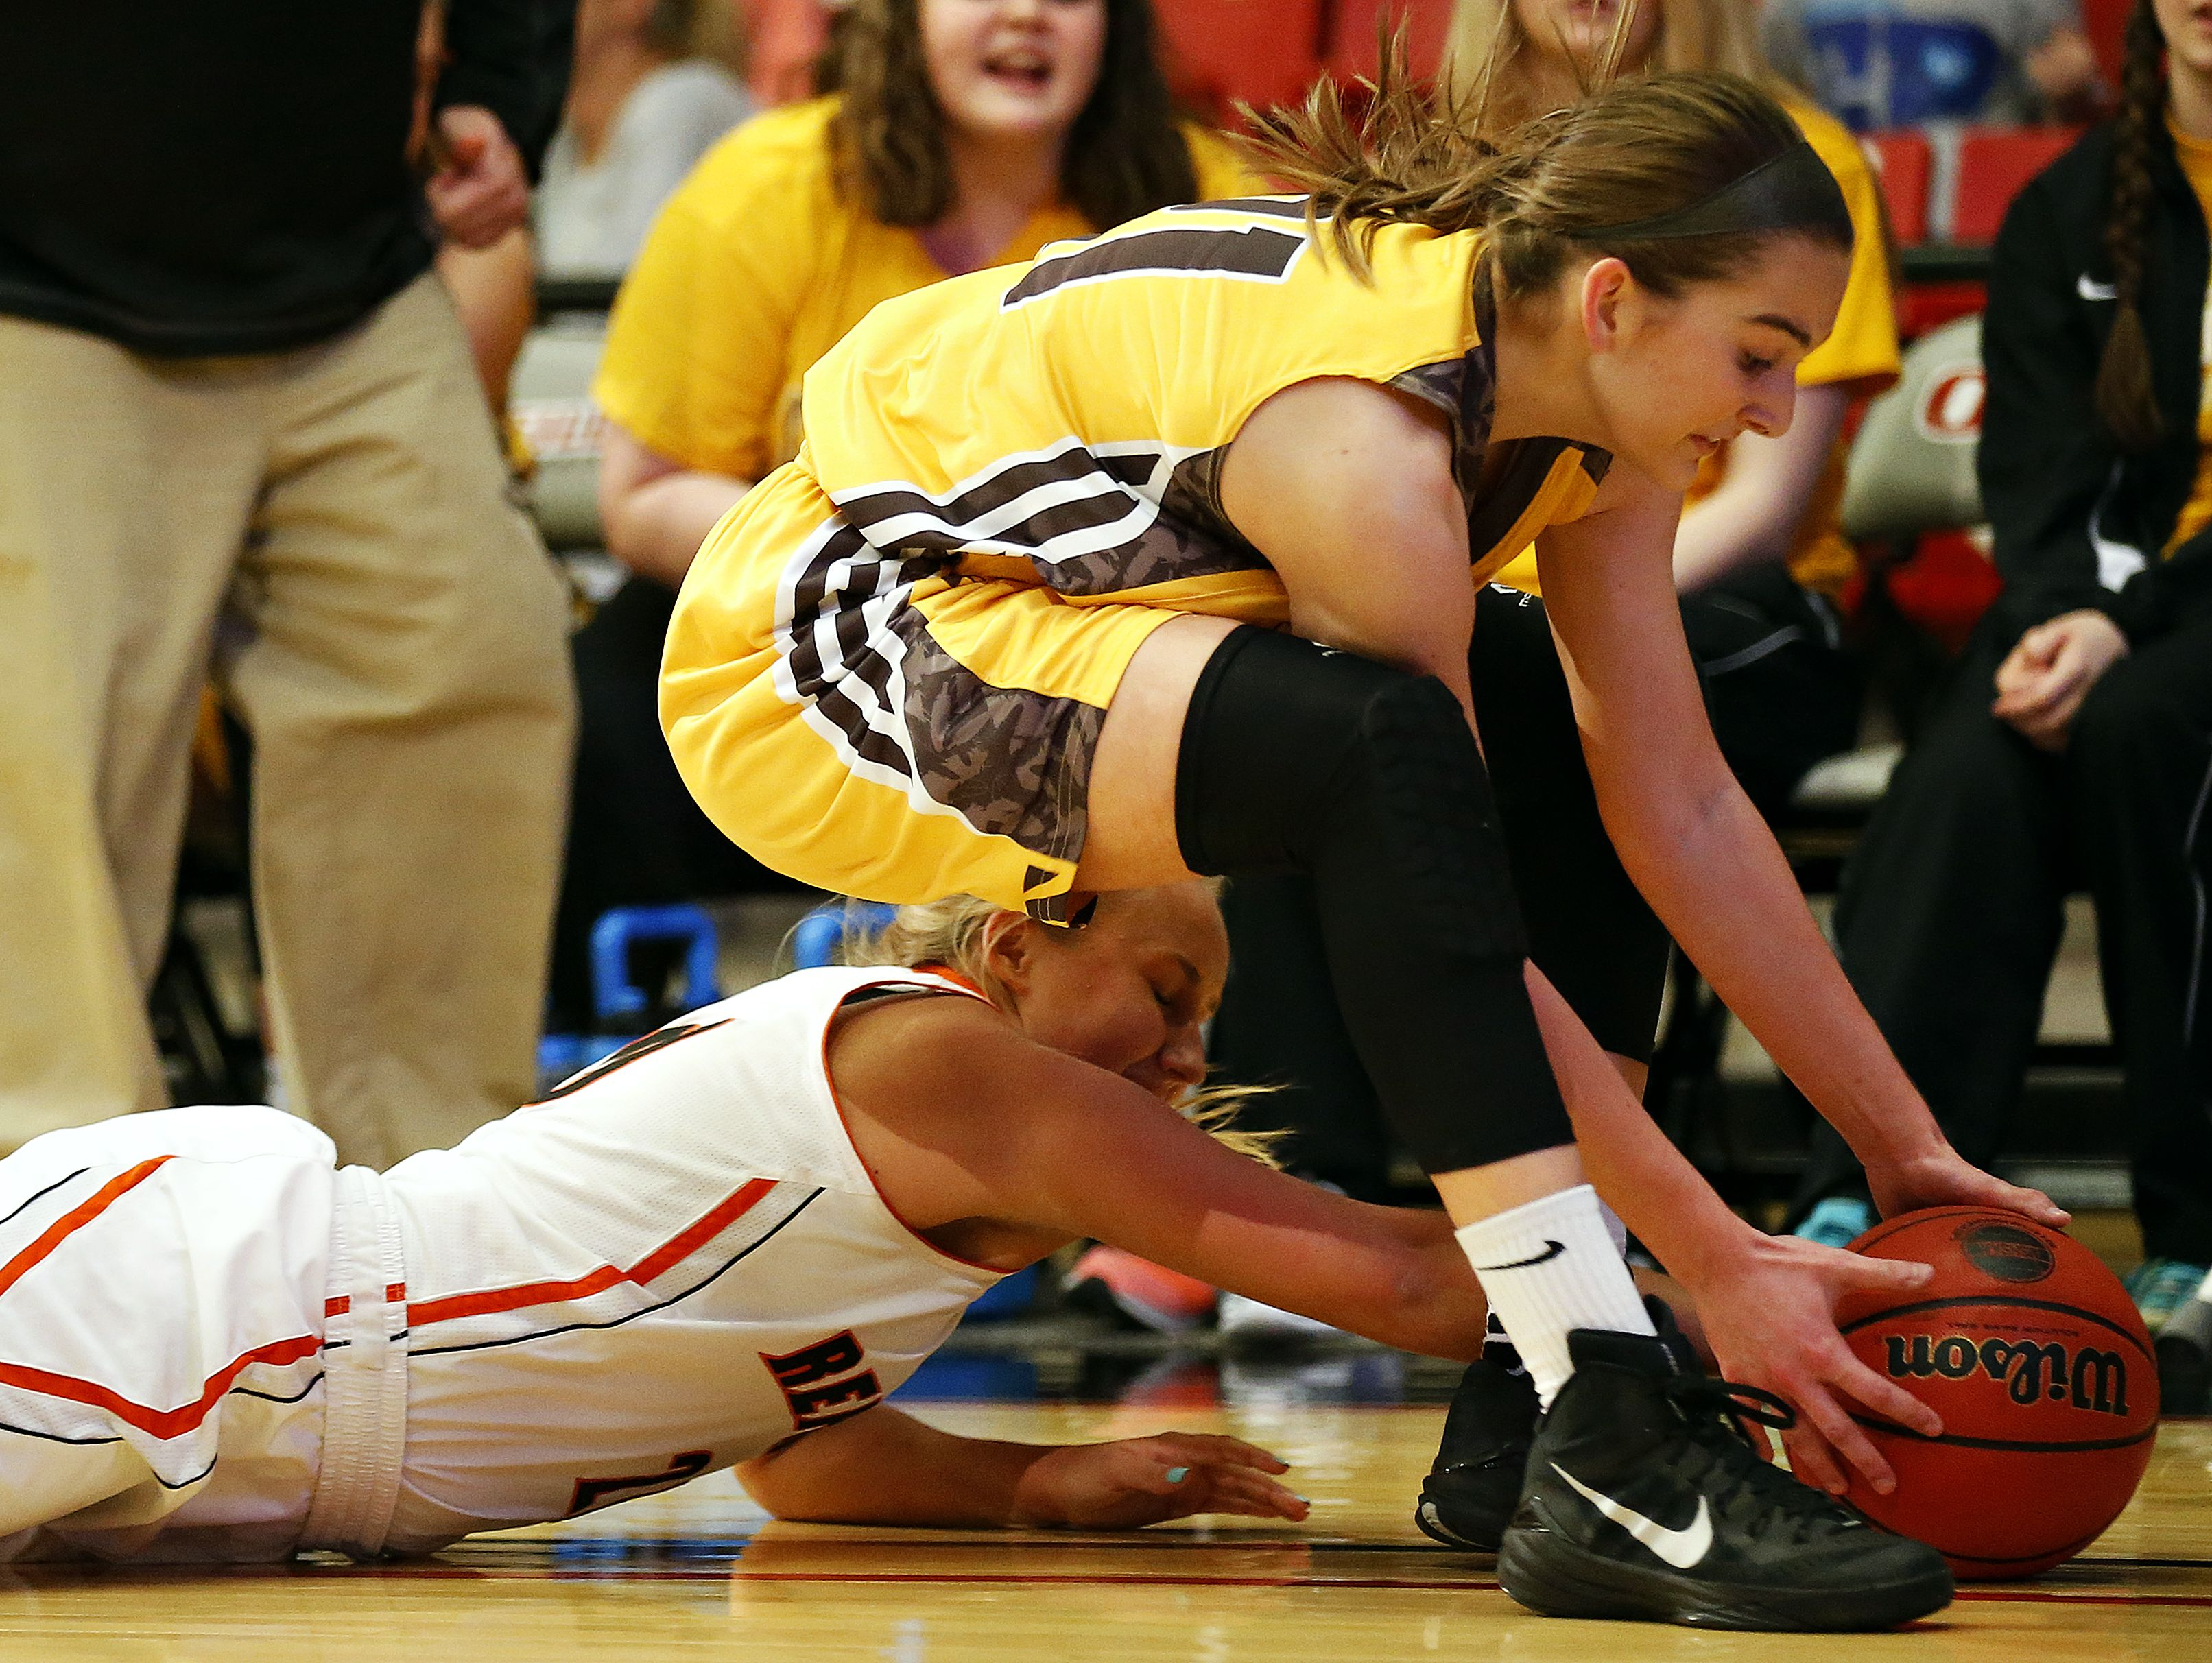 Republic High School guard Alexis Ladwig (20) and Kickapoo High School guard Jordan Wersinger (21) fight for a loose ball during first quarter action of the class 5 sectional playoff game between Republic High School and Kickapoo High School played at the O'Reilly Family Event Center in Springfield, Mo. on March 9, 2016. The Kickapoo Lady Chiefs won the game 81-65.